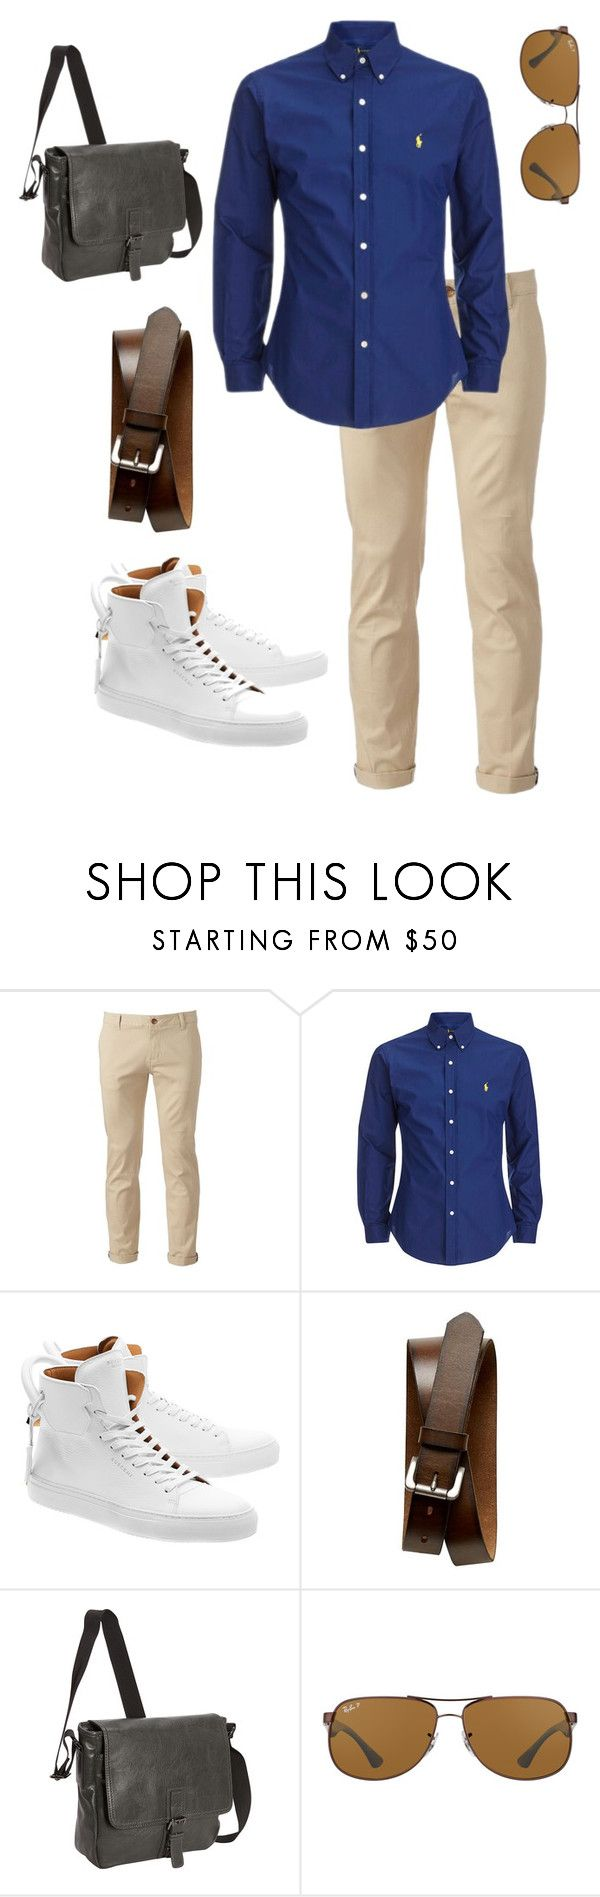 """Laza"" by balog-viki on Polyvore featuring Chor, BUSCEMI, Banana Republic, Kenneth Cole Reaction, Ray-Ban, men's fashion and menswear"